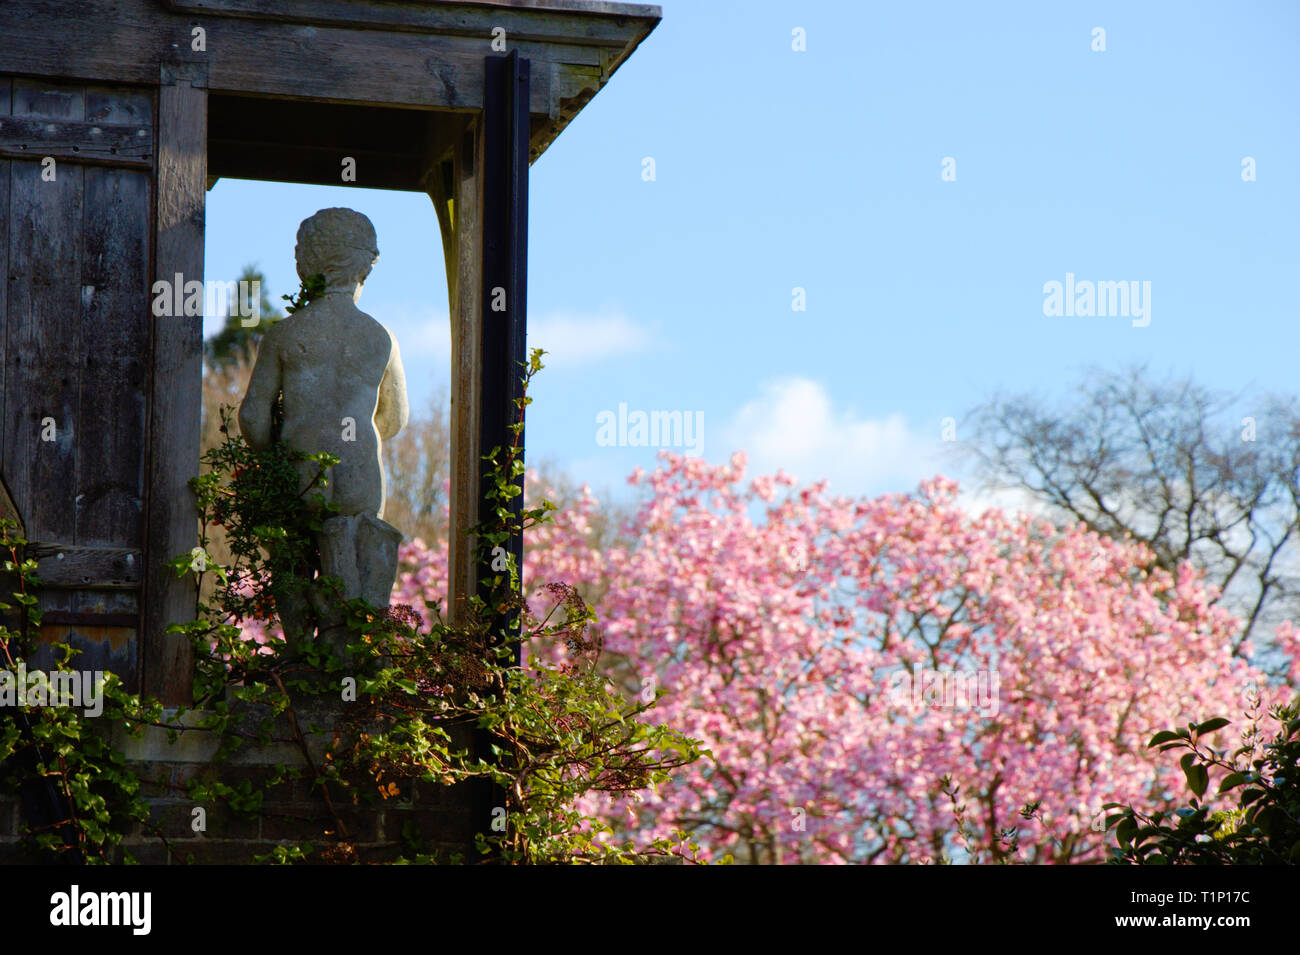 Back side of a classical antique statue made of marble in a garden in spring. - Stock Image